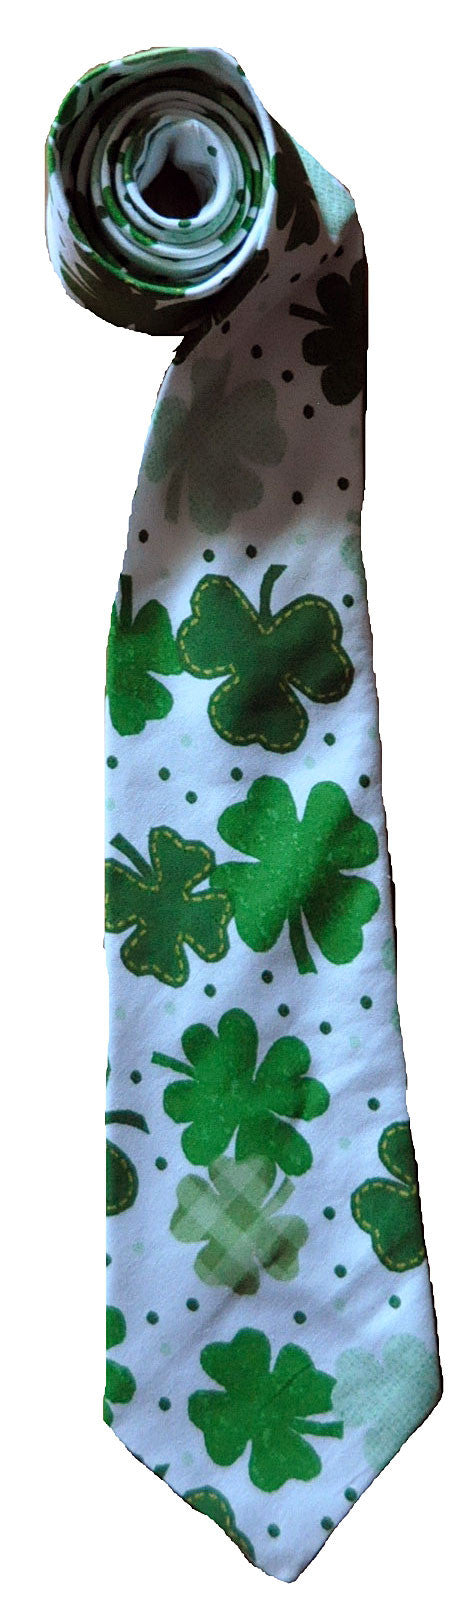 White Clover Ties - Handmade Men's Necktie